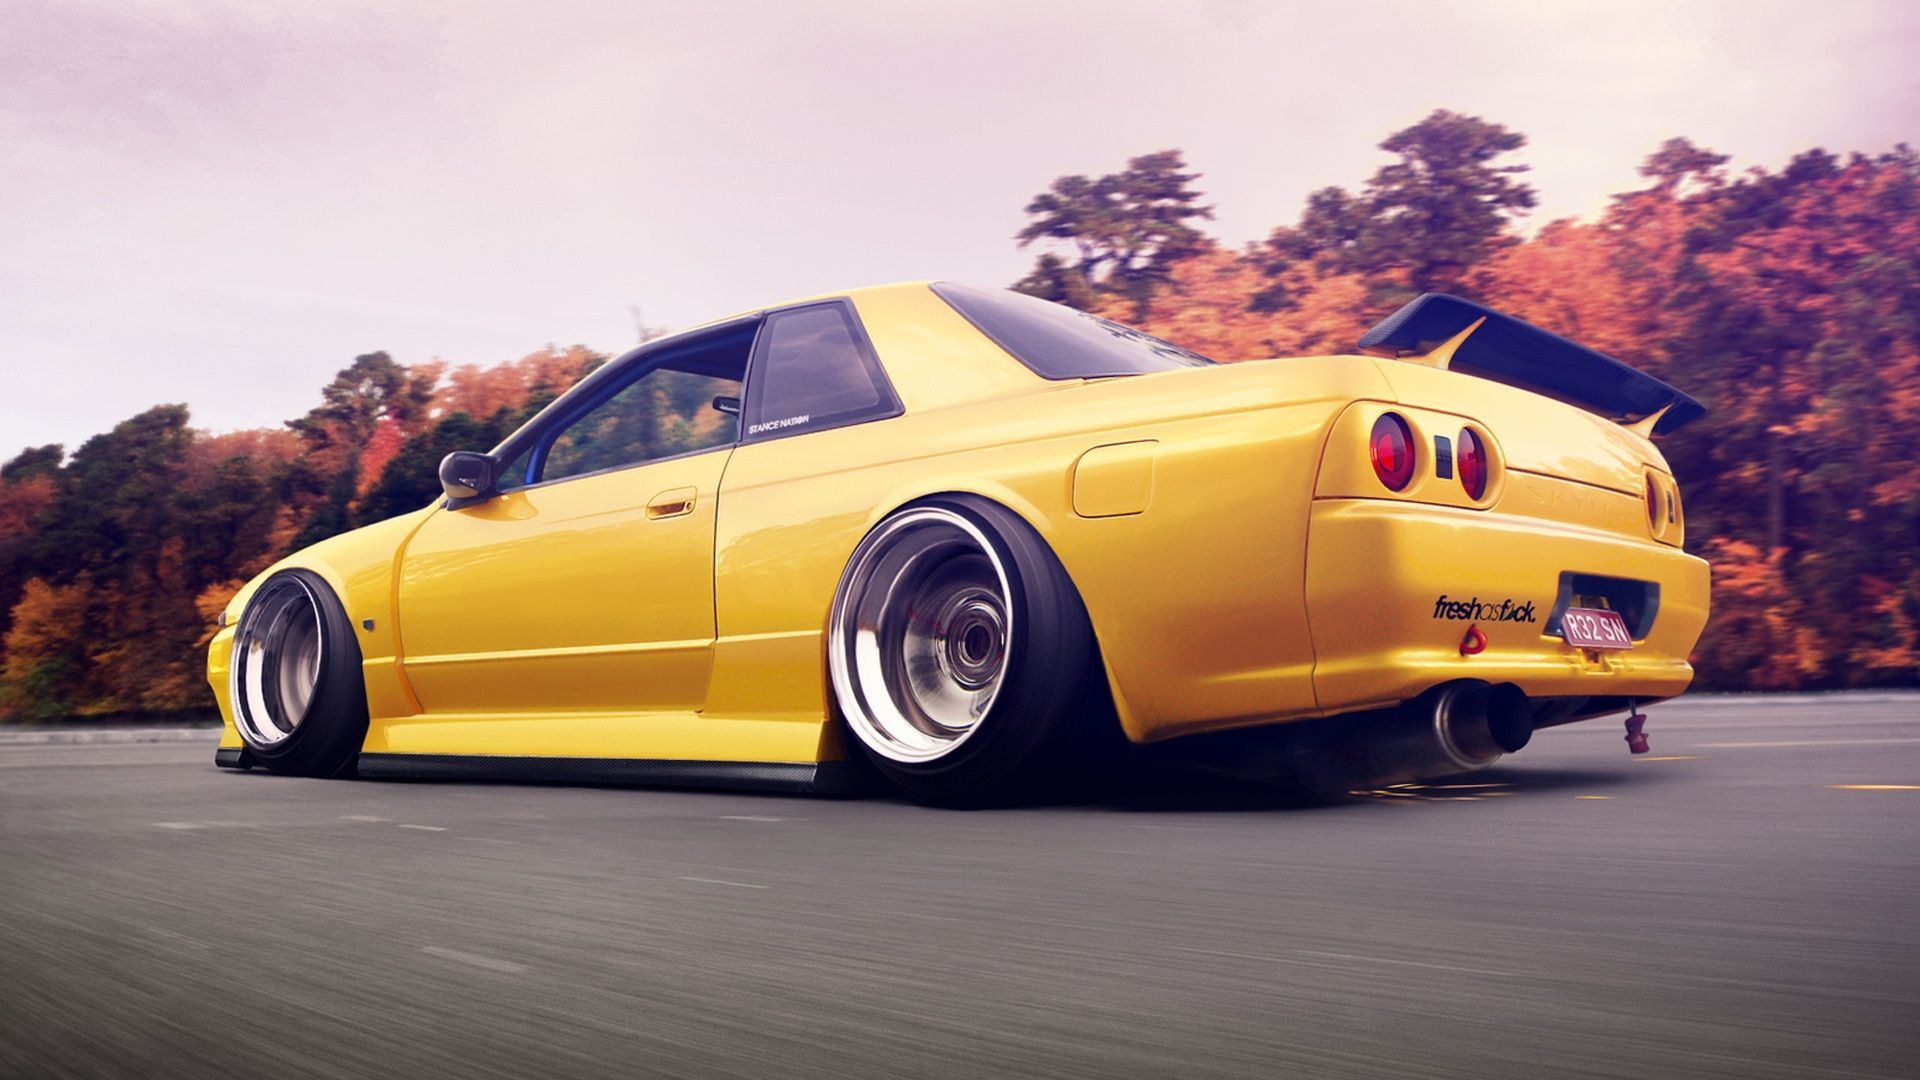 Nissan skyline wallpaper collection for free download hd nissan skyline wallpaper collection for free download vanachro Images